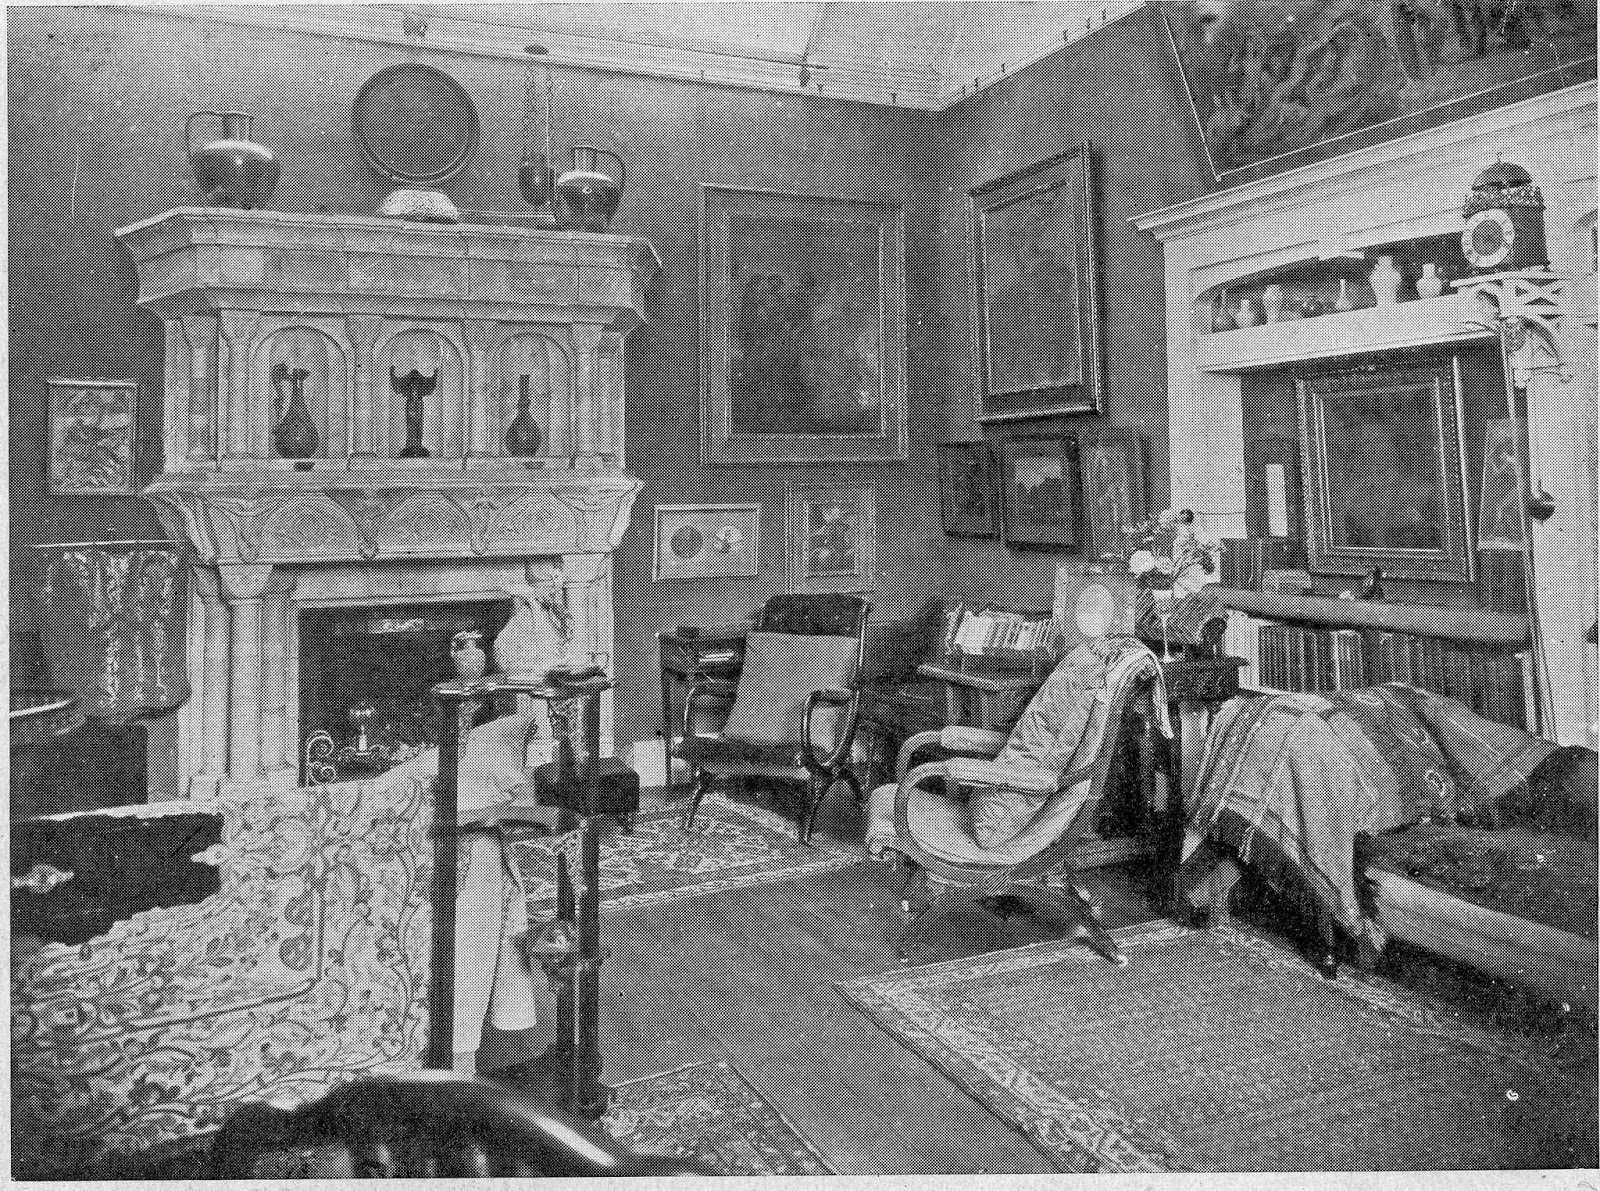 Drawing Room at Limnerslease, 1913 This room had many lives – as a music room, as Mary Watts's Home Arts and Industries classroom, as G. F. Watts's 'overflow' studio and – when other uses permitted – as a Drawing Room. From 2015 it will have yet another identity as a new public Gallery space, devoted to the art and design of Mary Watts.